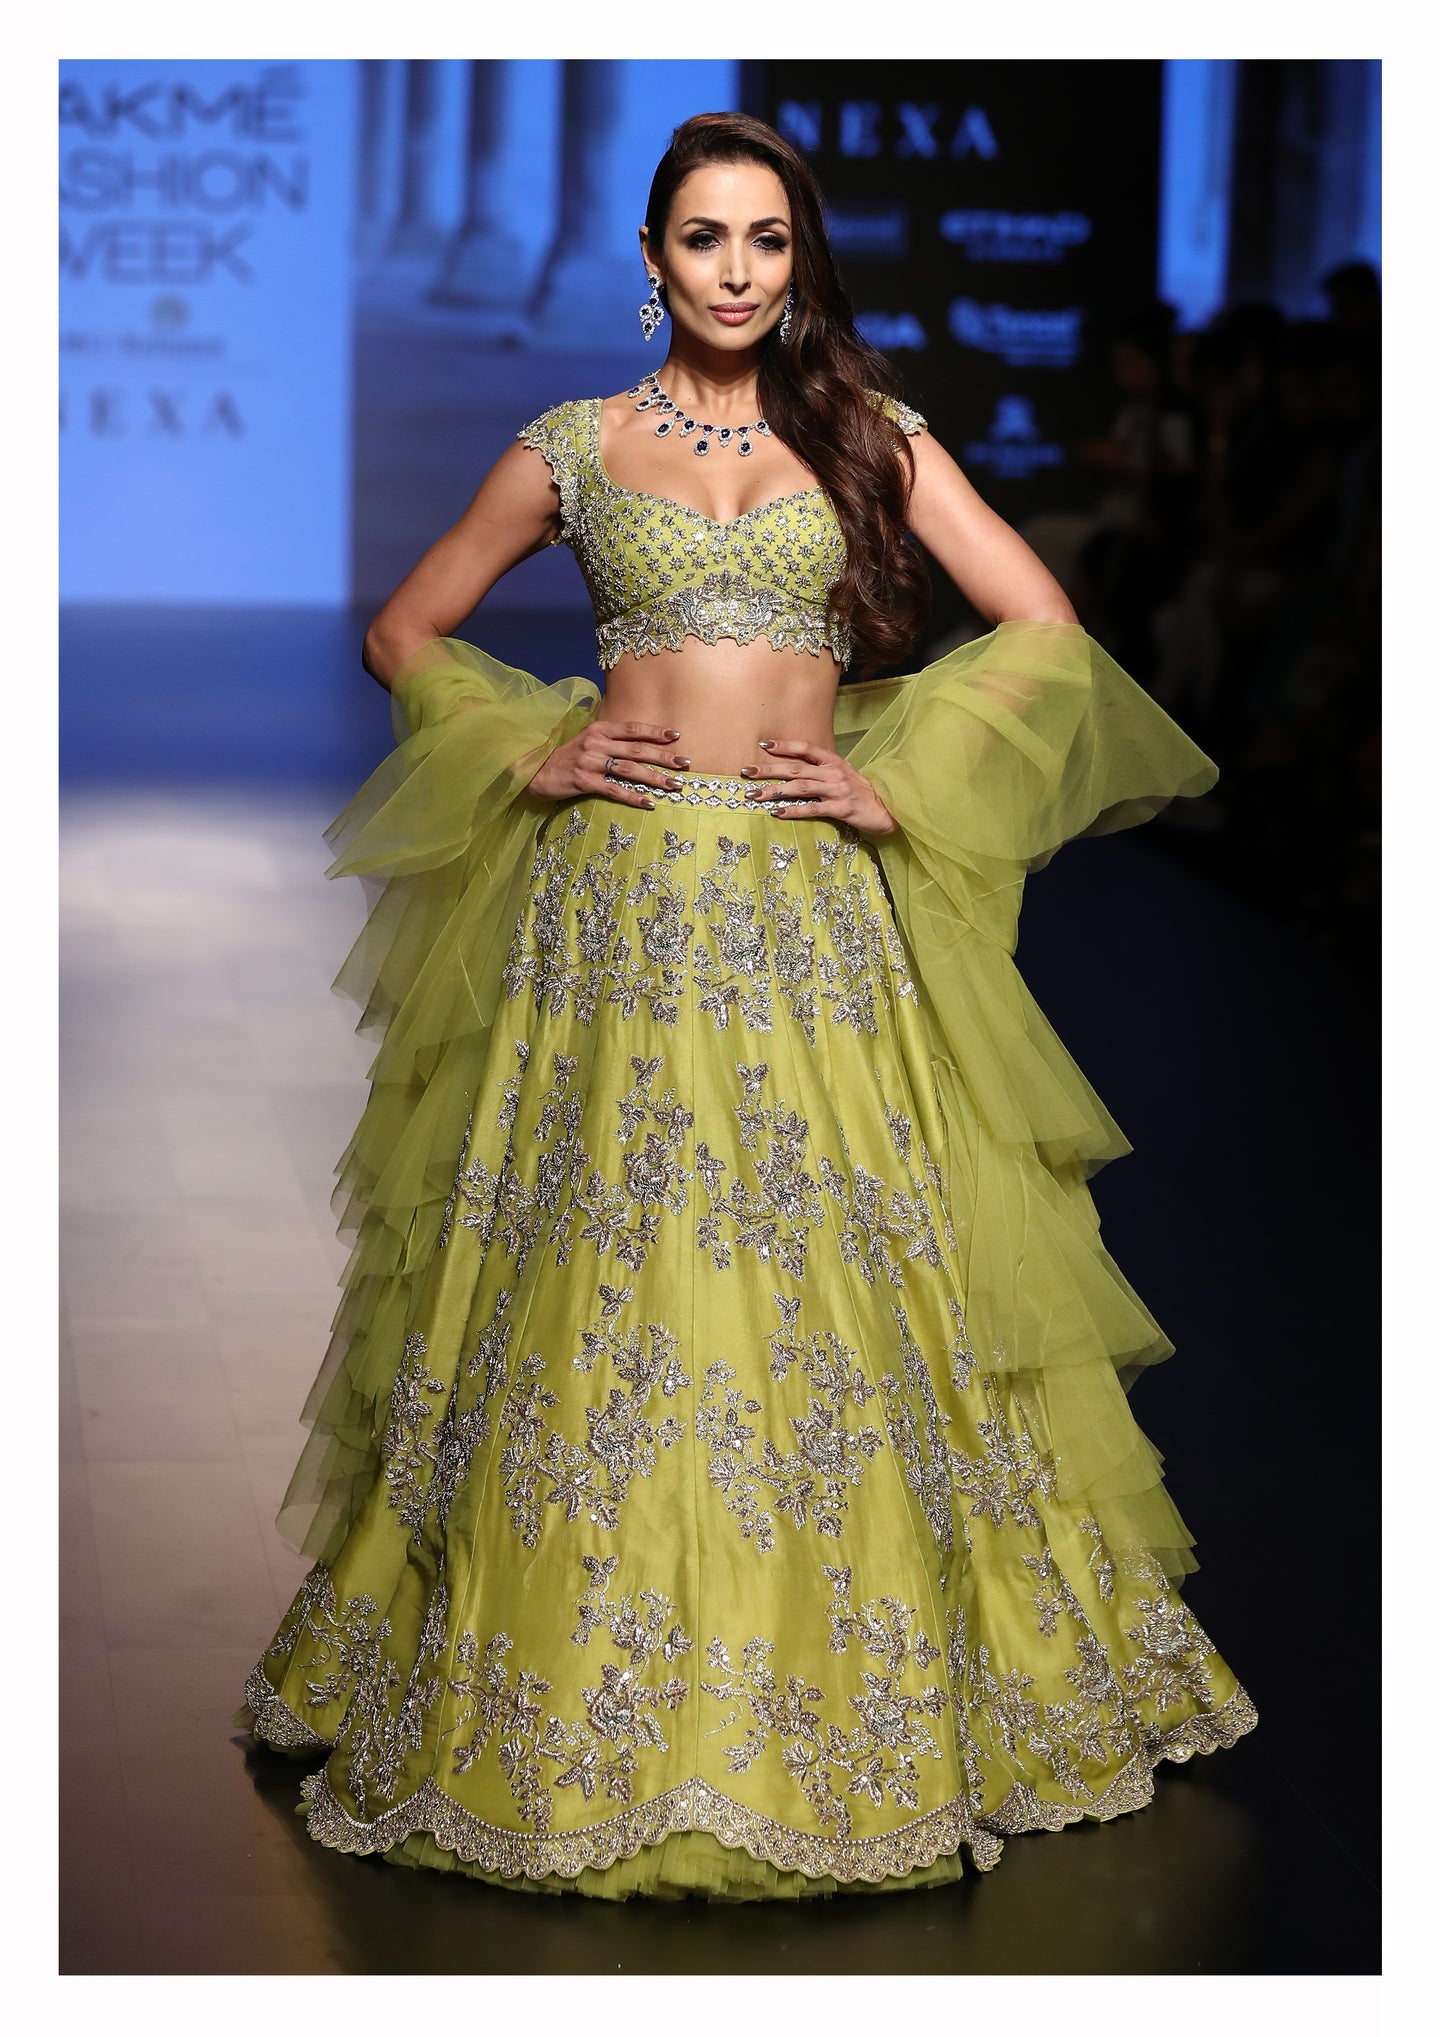 Apple Green Sequin & Dabka Embroidered Lehenga with Blouse and Fringe Dupatta - The Grand Trunk